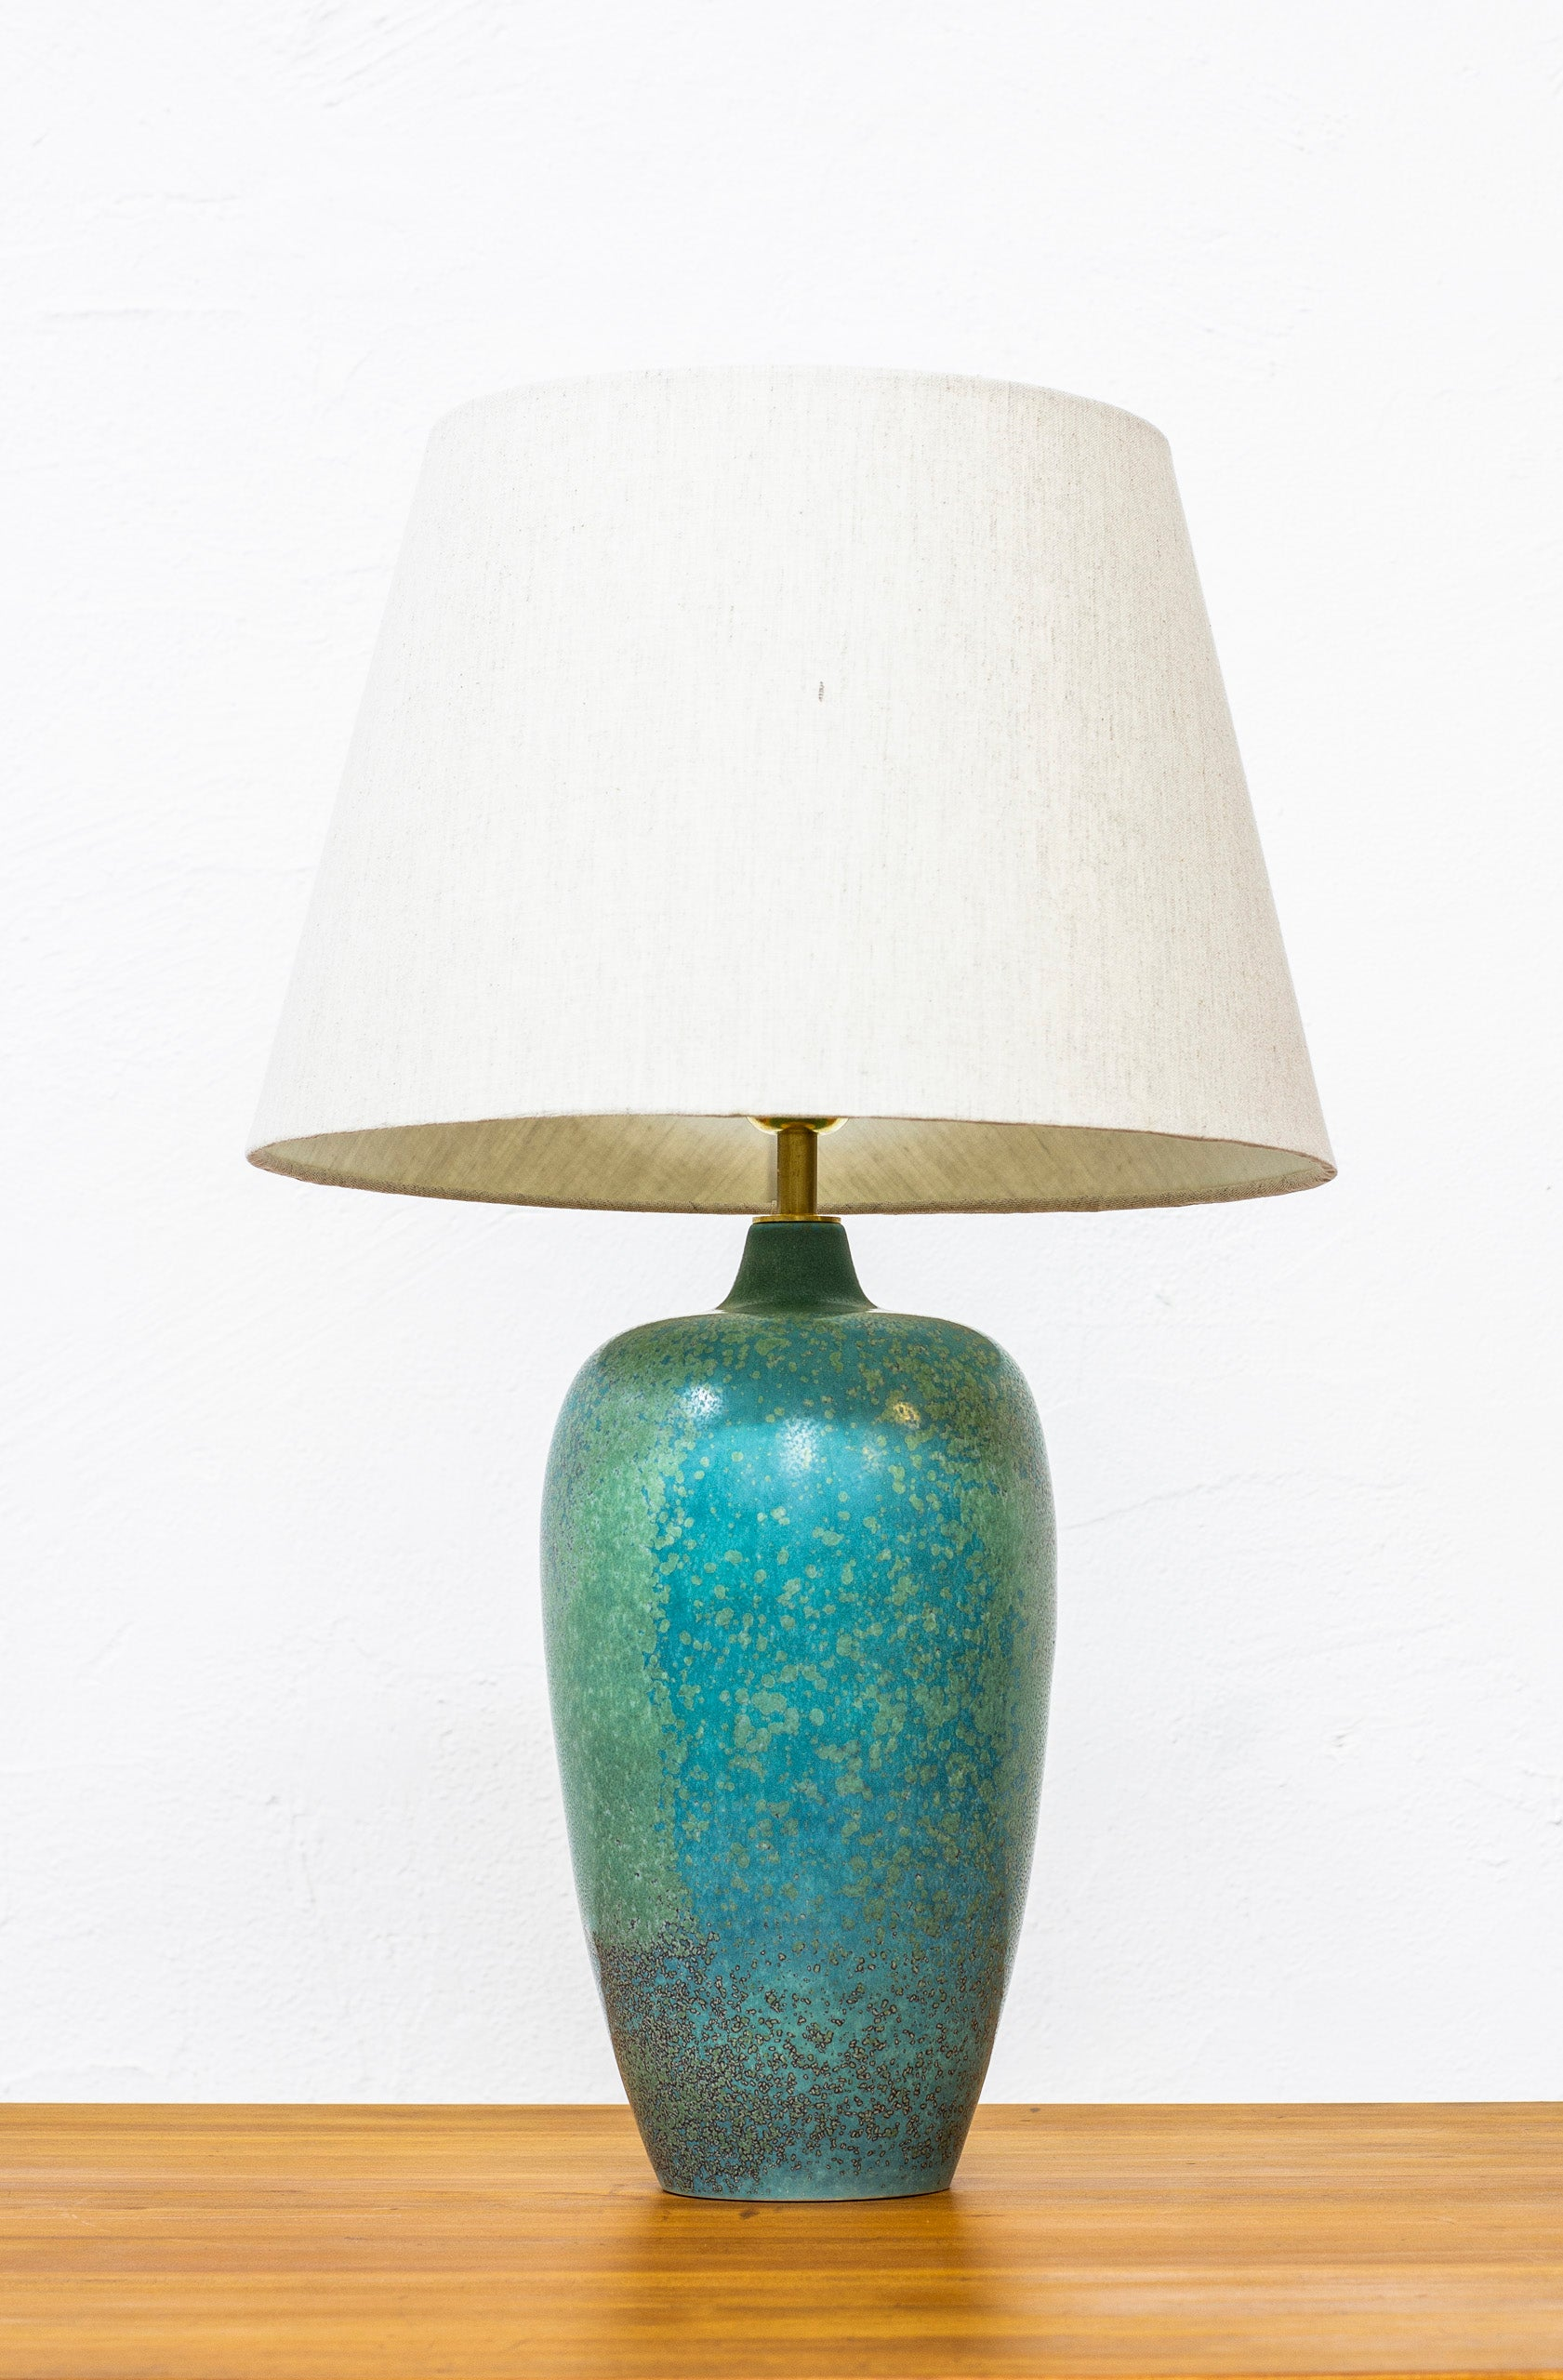 Table lamp by Carl-Harry Stålhane